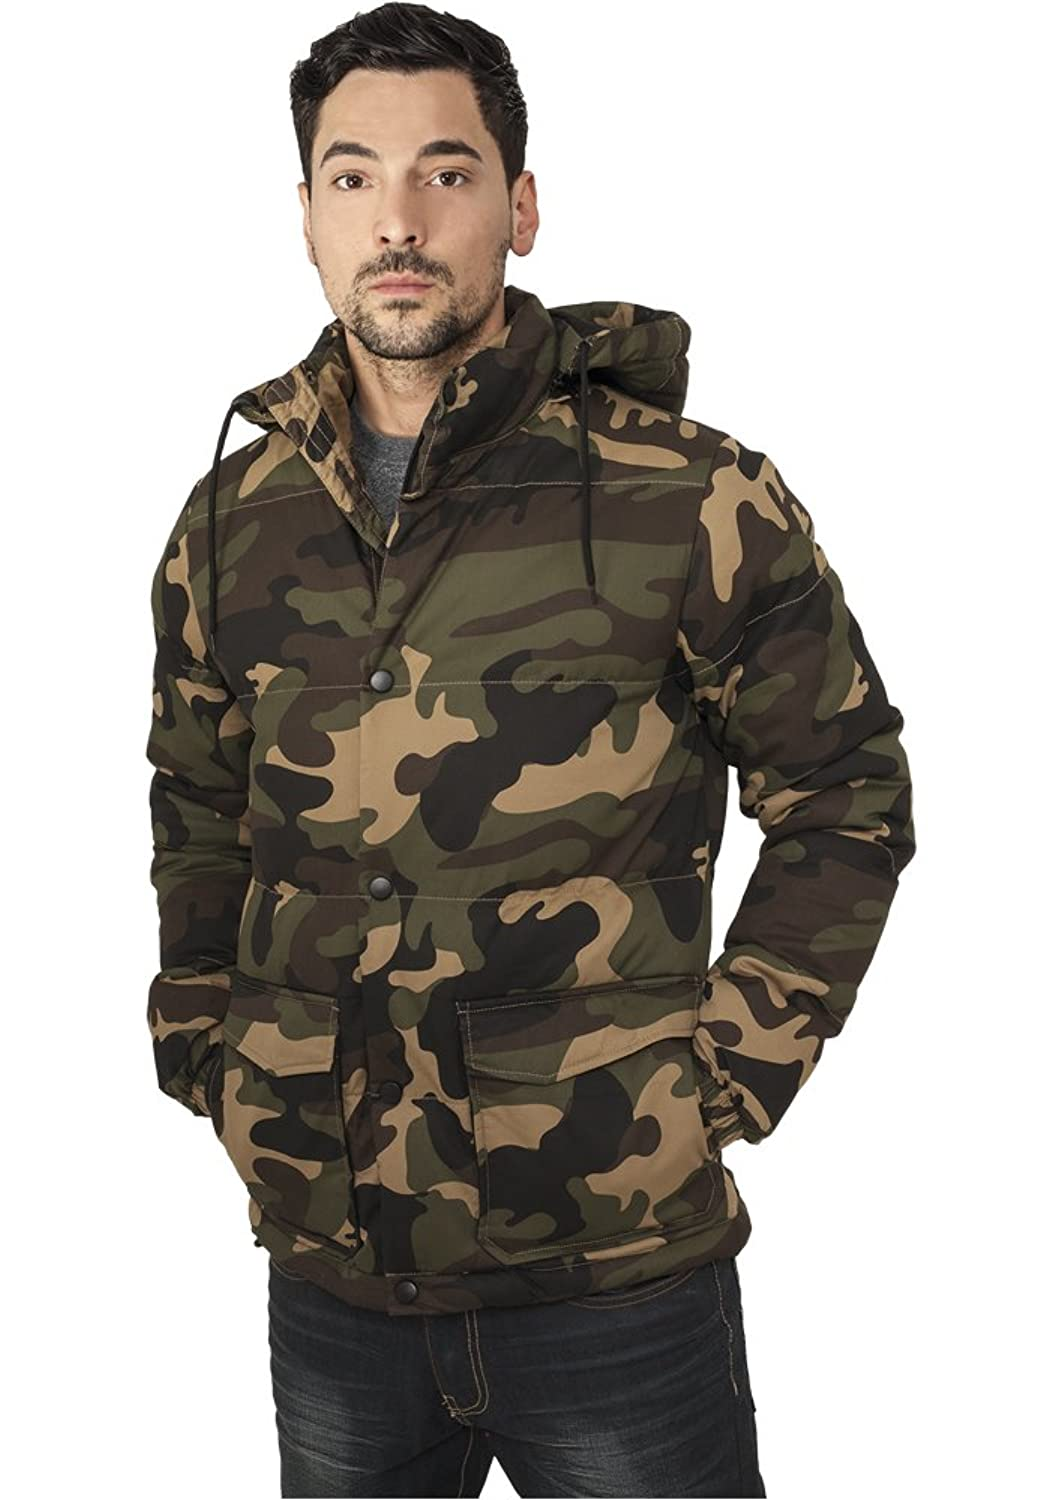 URBAN CLASSICS - Camo Winter (woodcamo) - Jacke